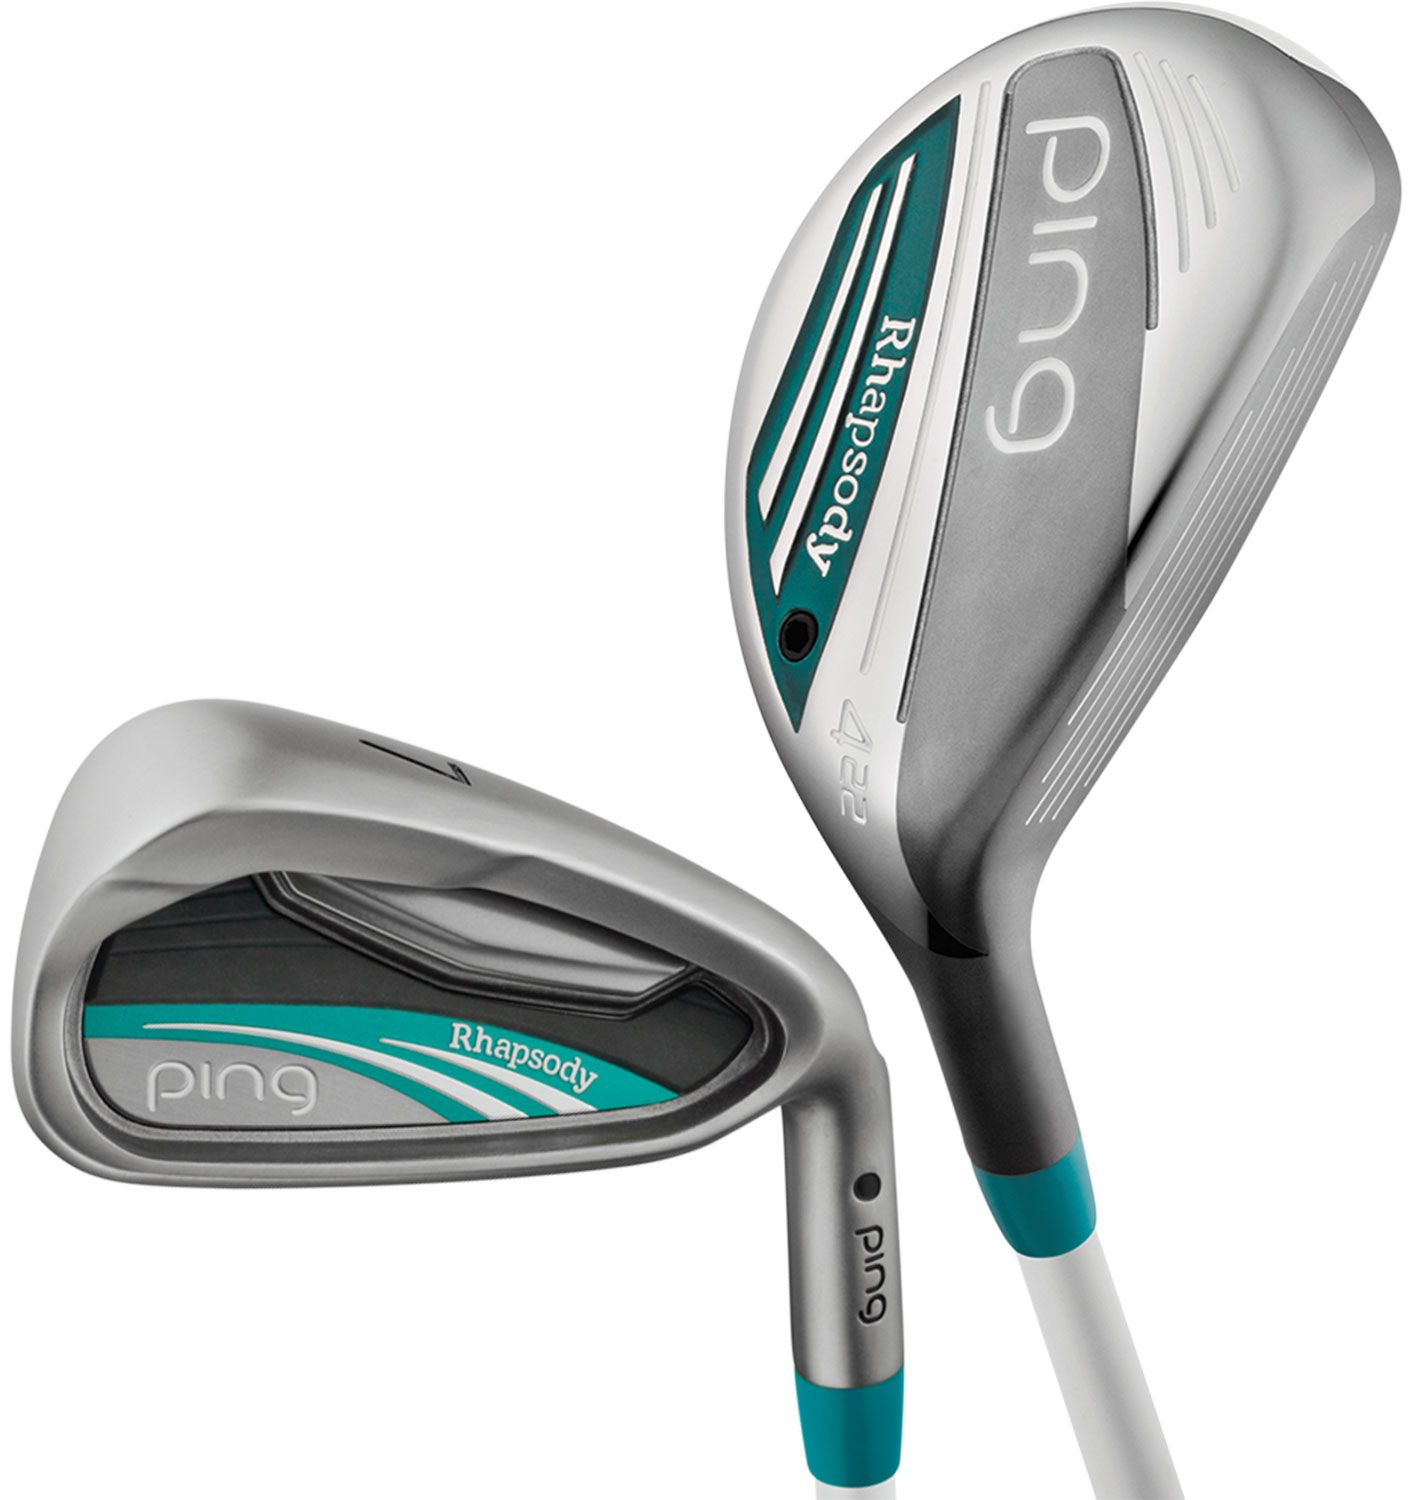 Ping irons dicks sporting goods product image ping womens rhapsody hybridirons graphite nvjuhfo Image collections